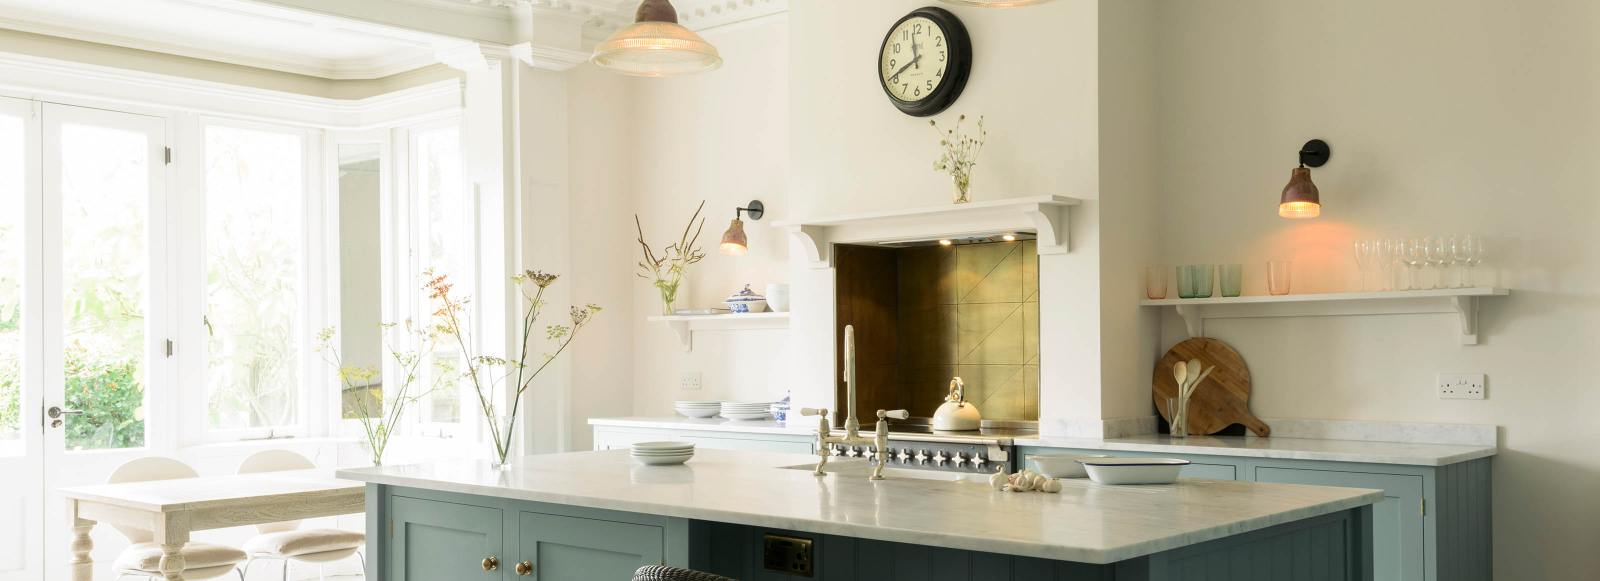 Bespoke Kitchens, Bathrooms and Interiors by deVOL photo 6